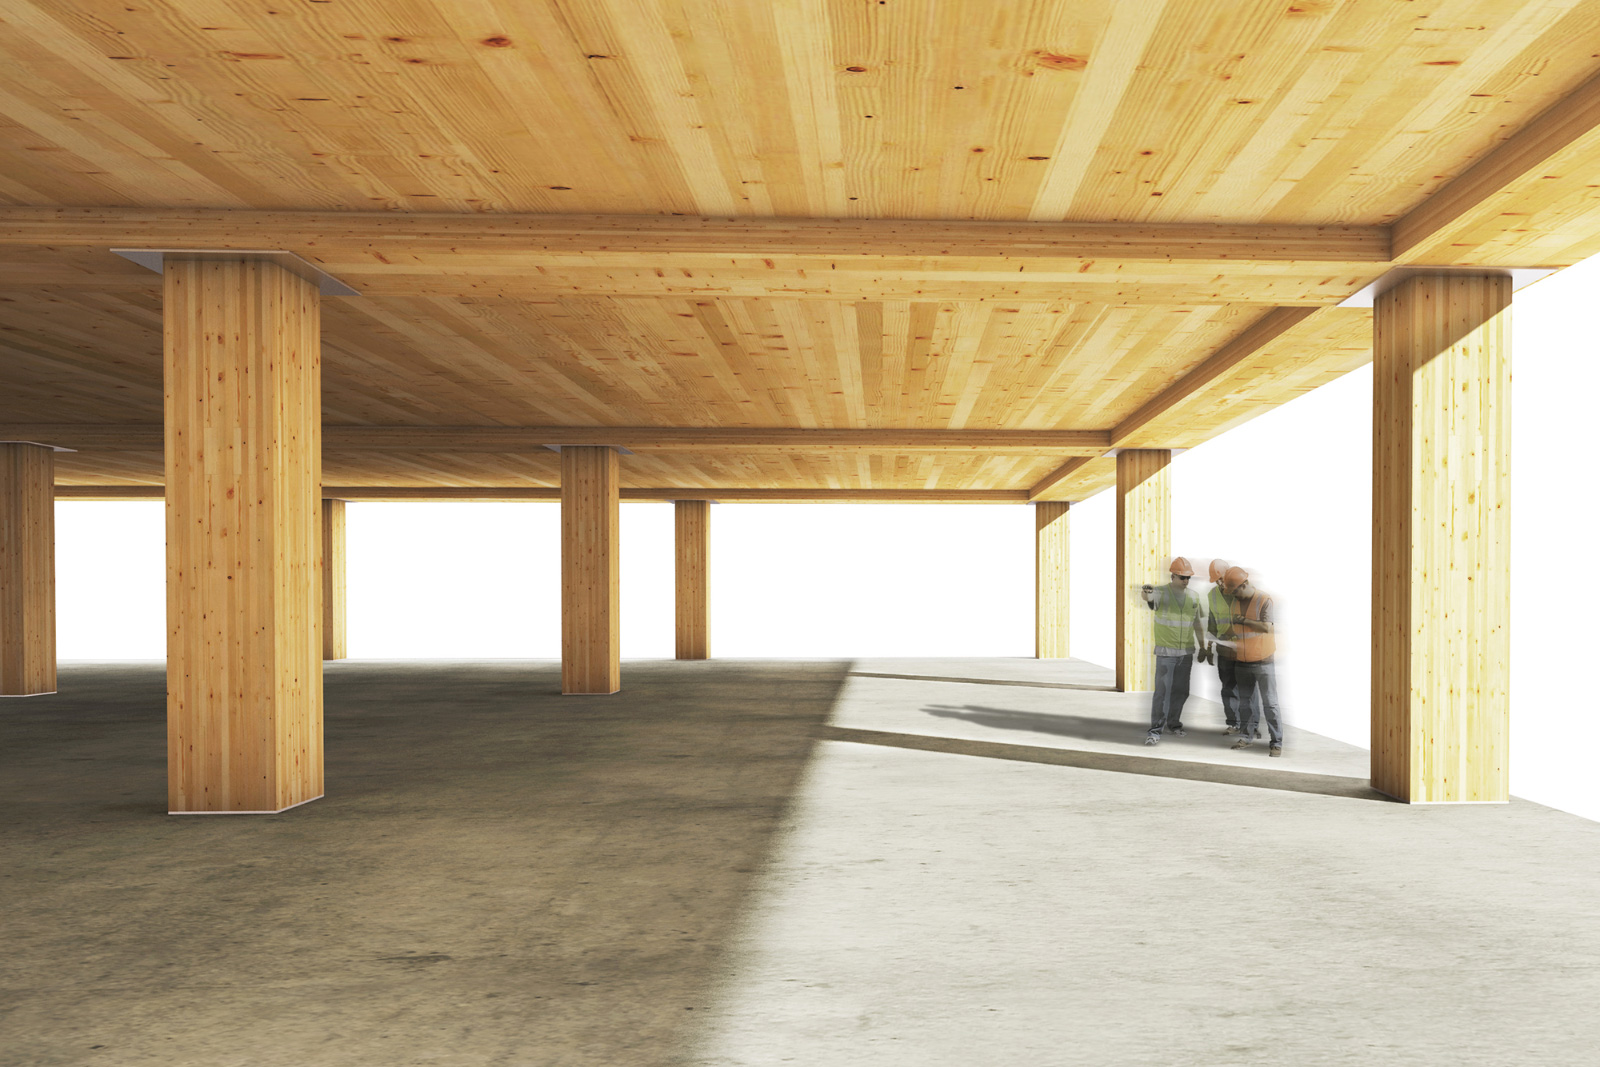 Rendering of a timber construction site